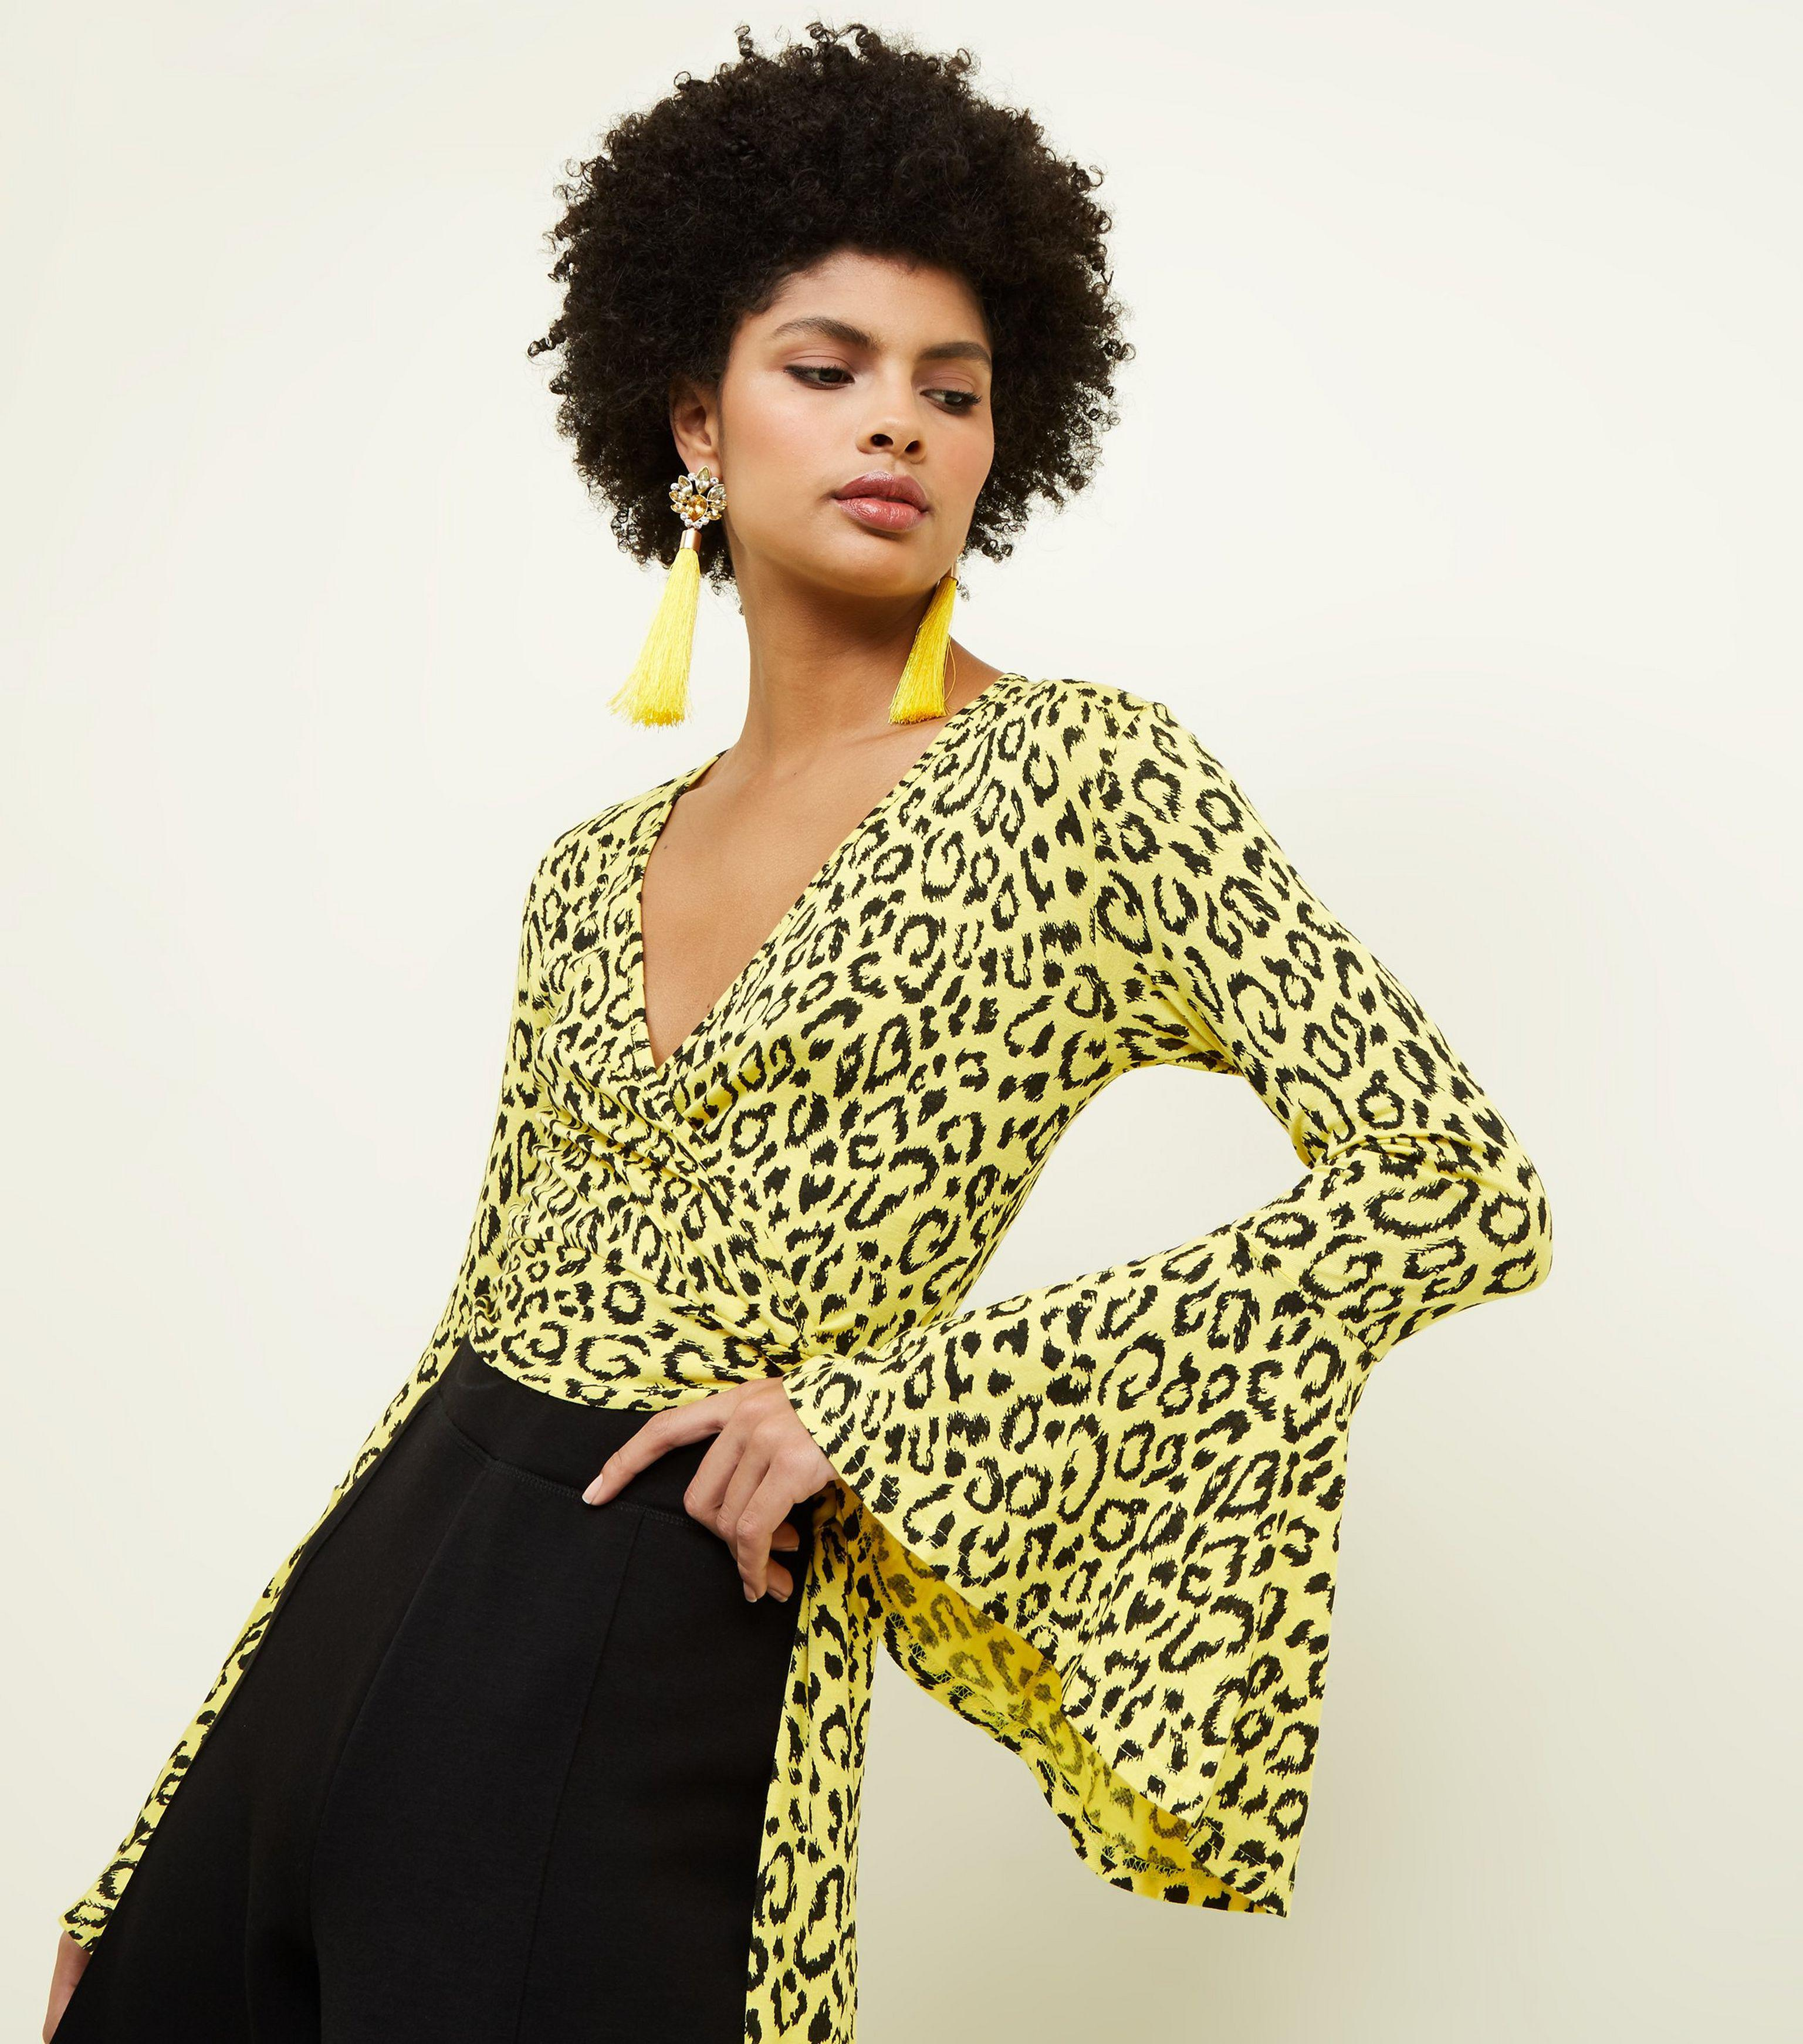 755014cb5e1ba New Look Yellow Leopard Print Bell Sleeve Wrap Top in Yellow - Lyst